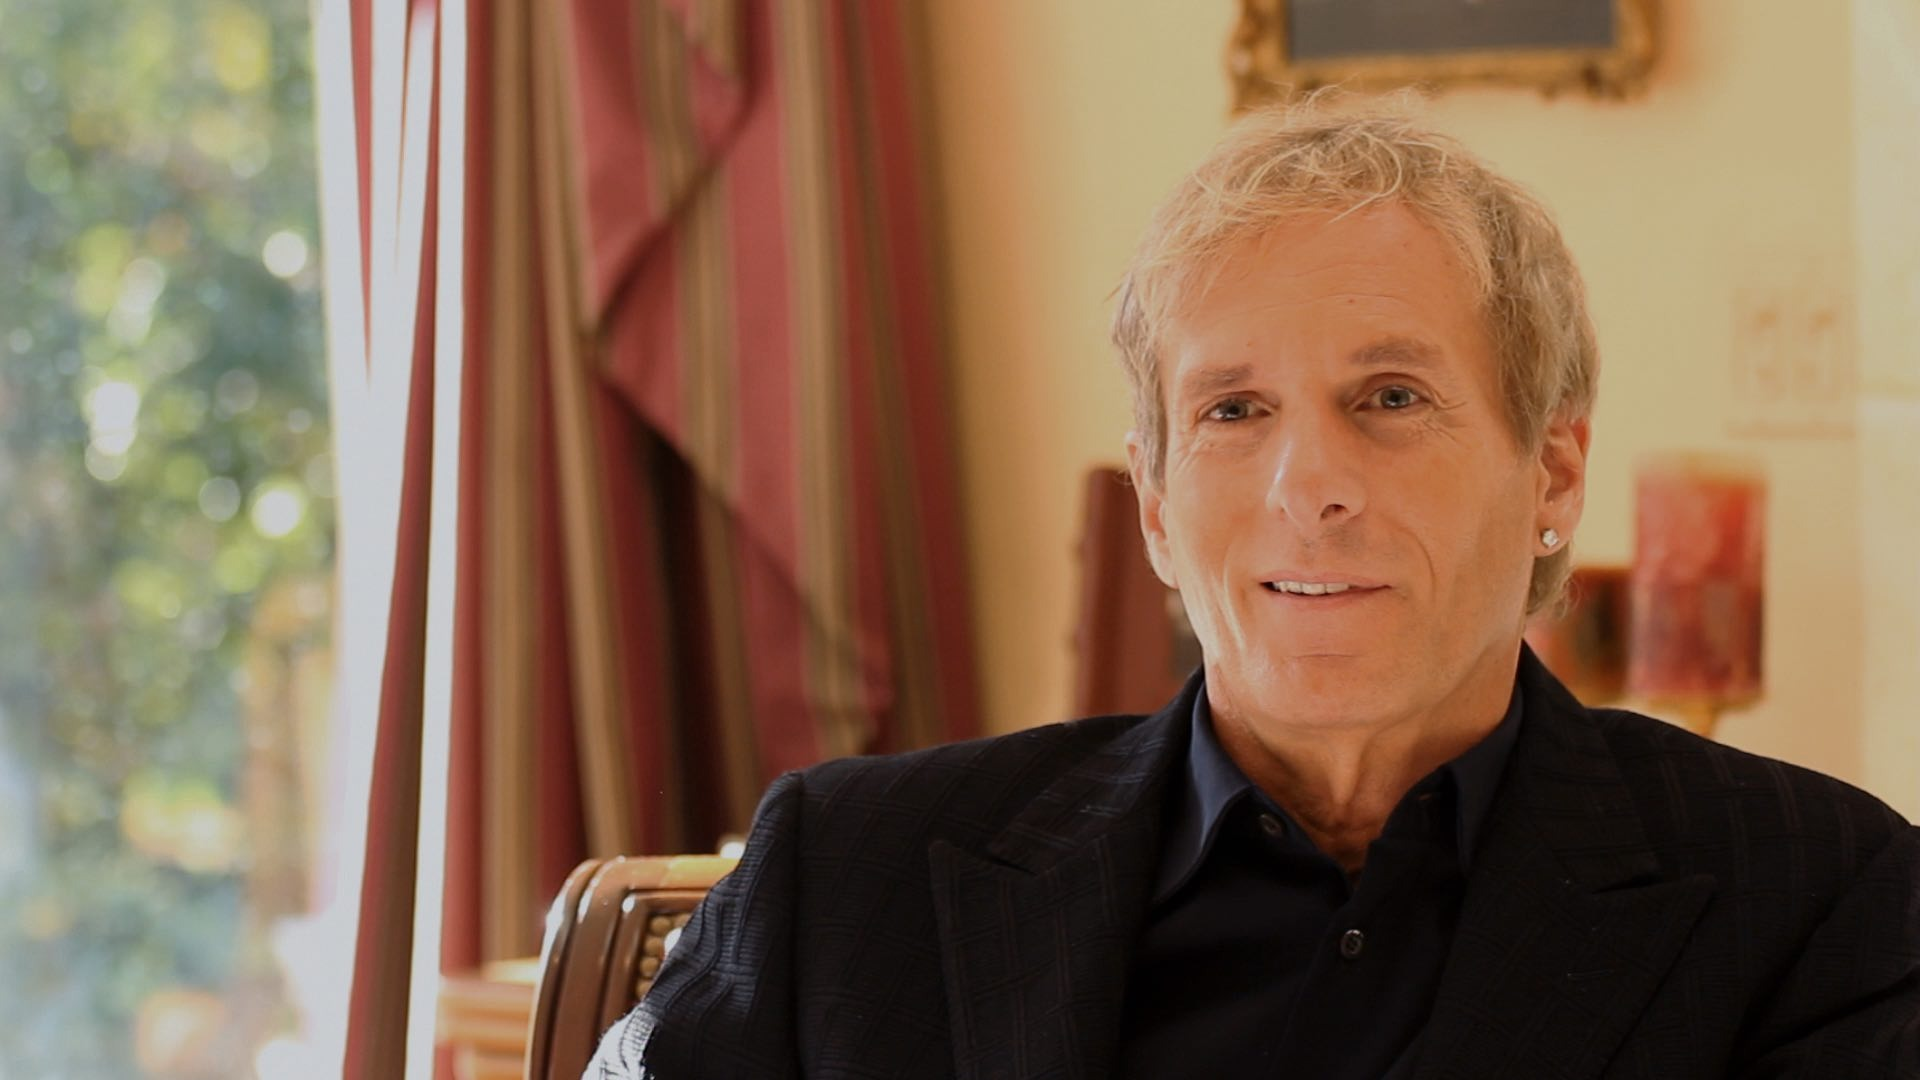 Michael Bolton on Motor City Magic, His Detroit Documentary and Creative Dreams